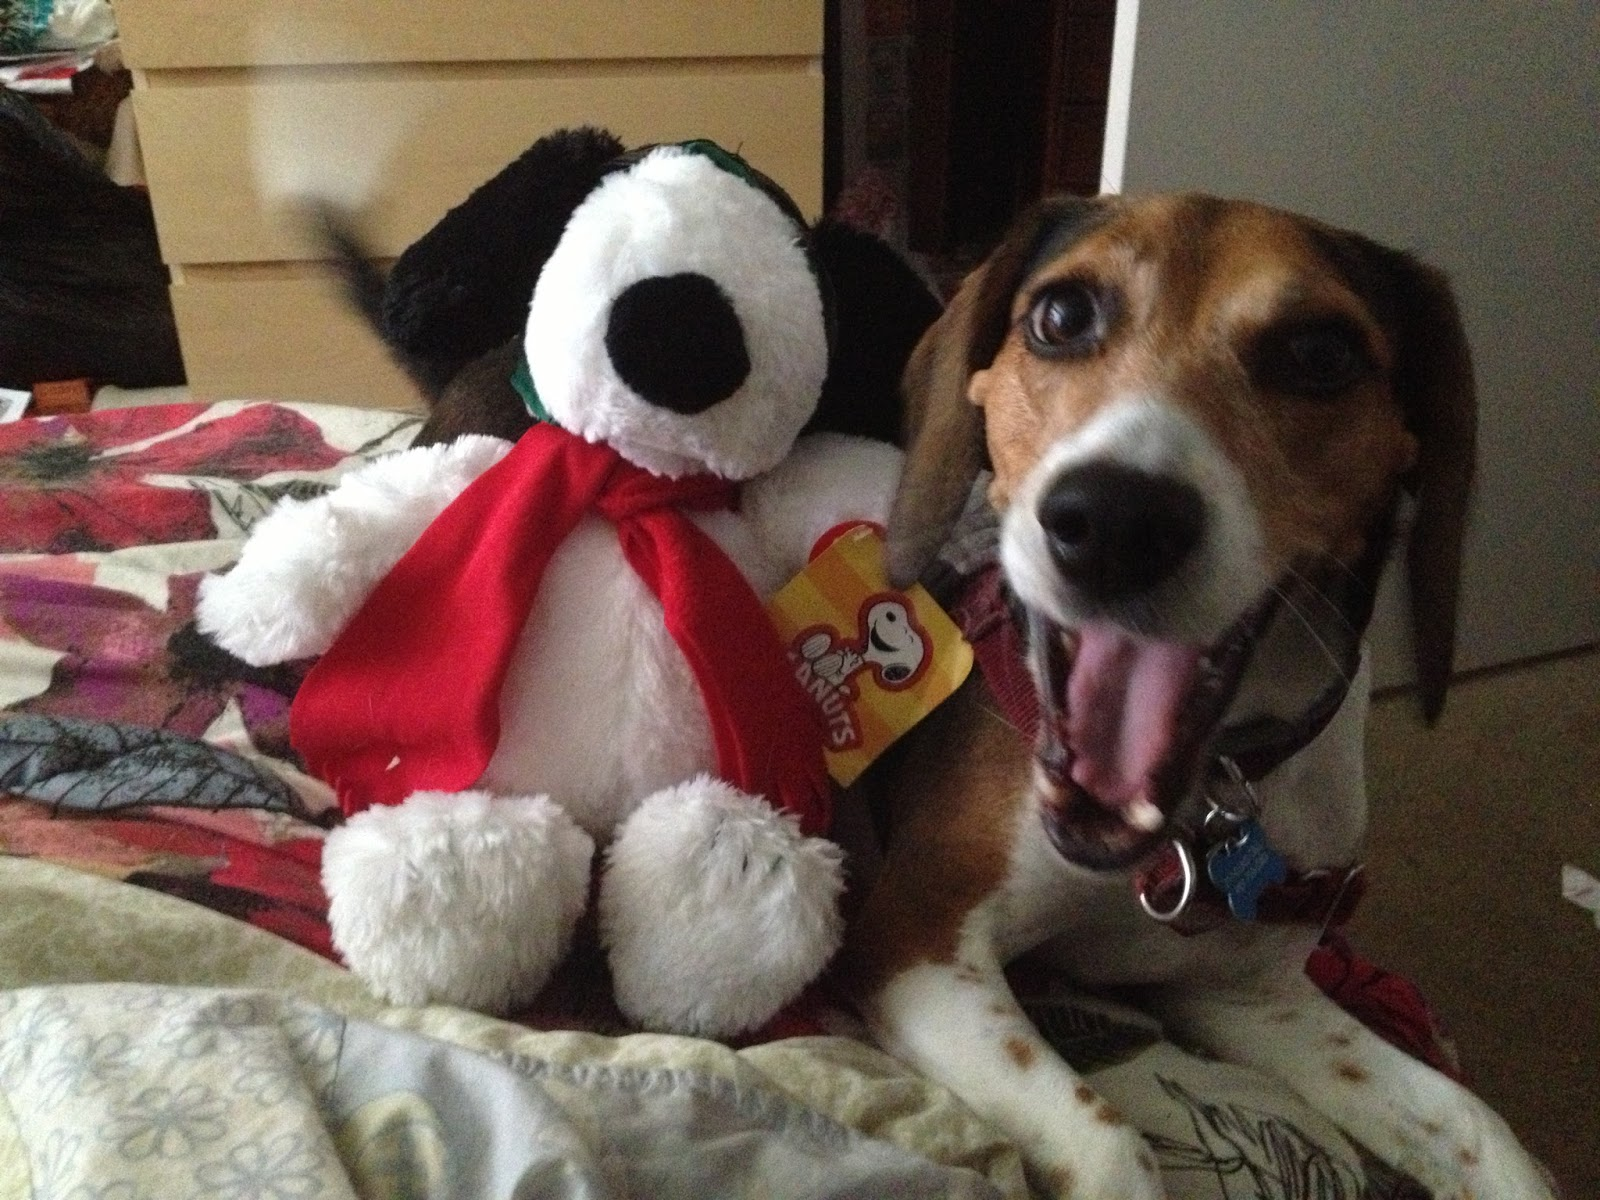 Dogs that look like snoopy 11